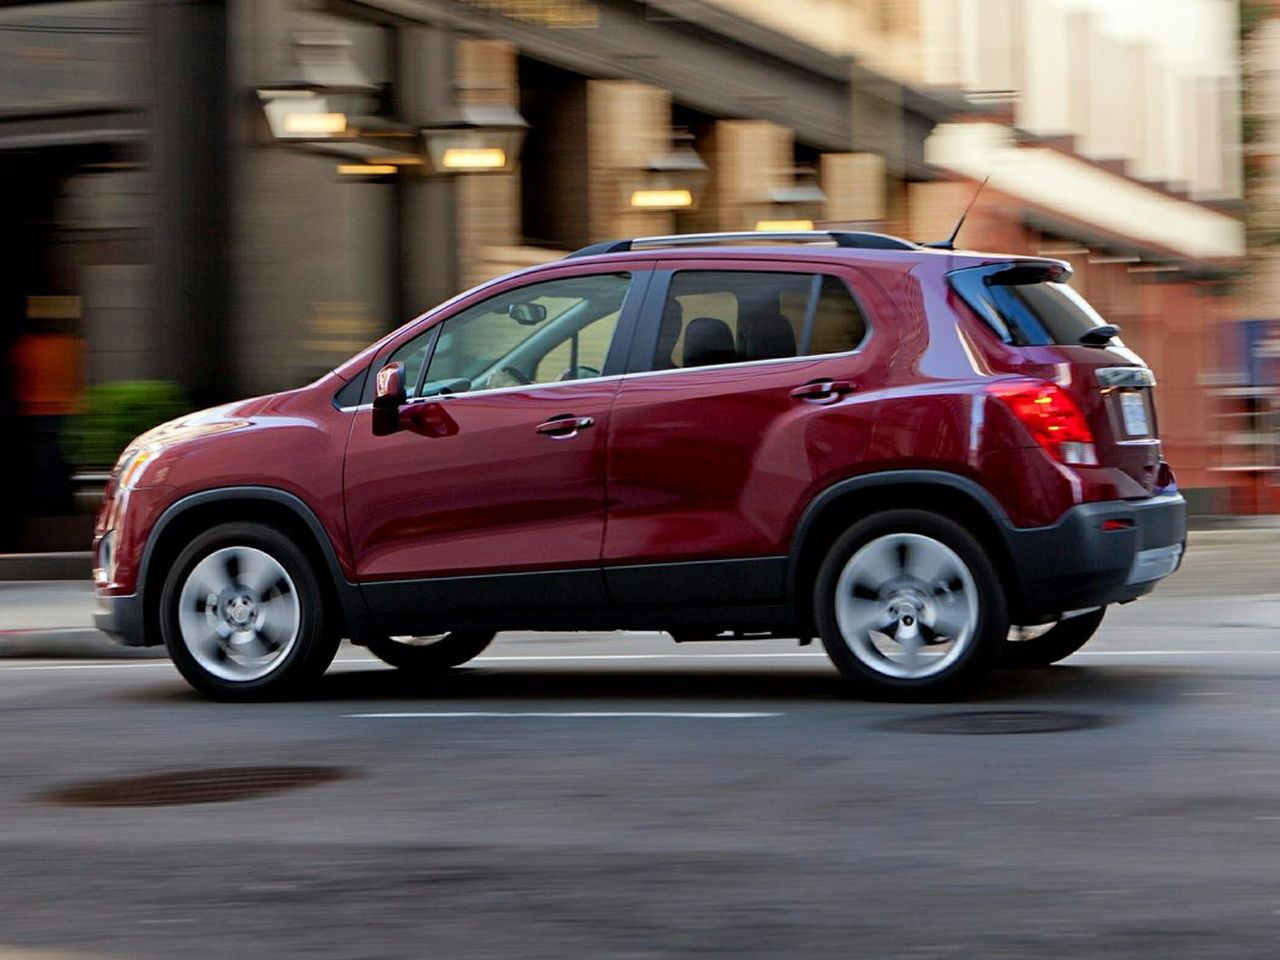 2018 chevrolet trax price and engine. Black Bedroom Furniture Sets. Home Design Ideas